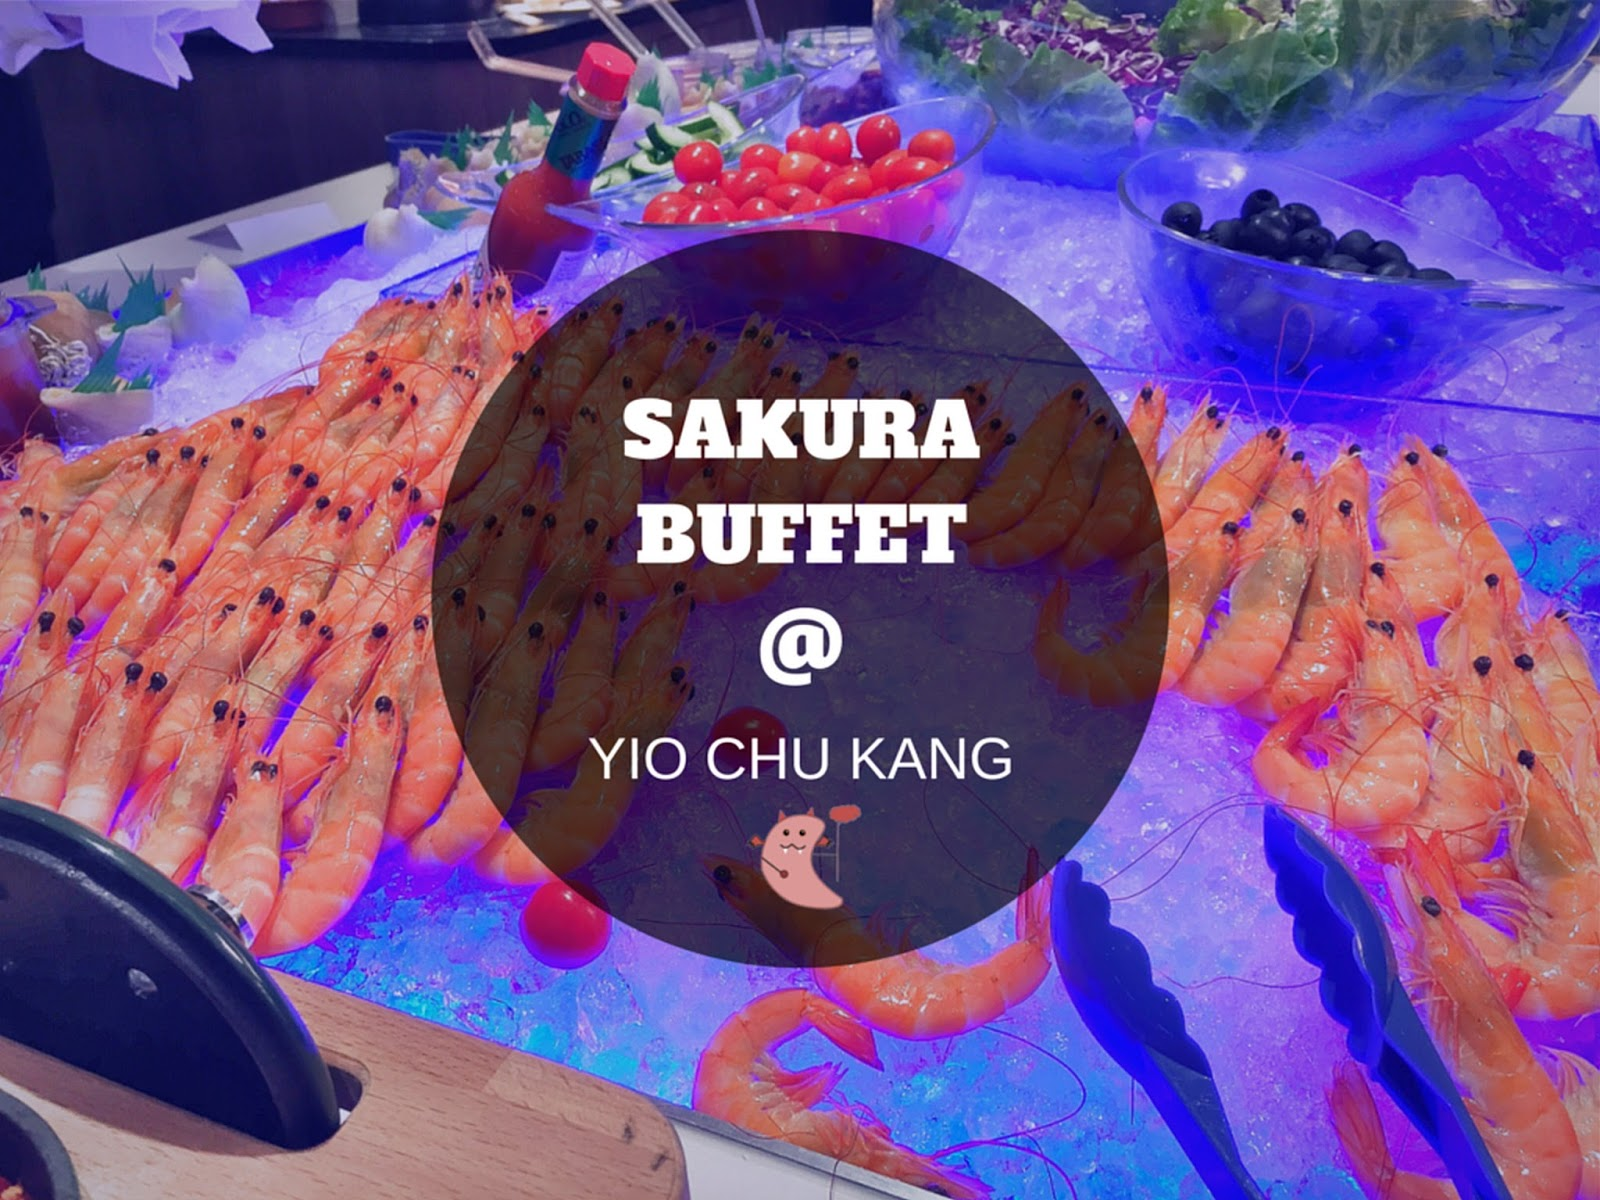 Sakura International Buffet at Yio Chu Kang